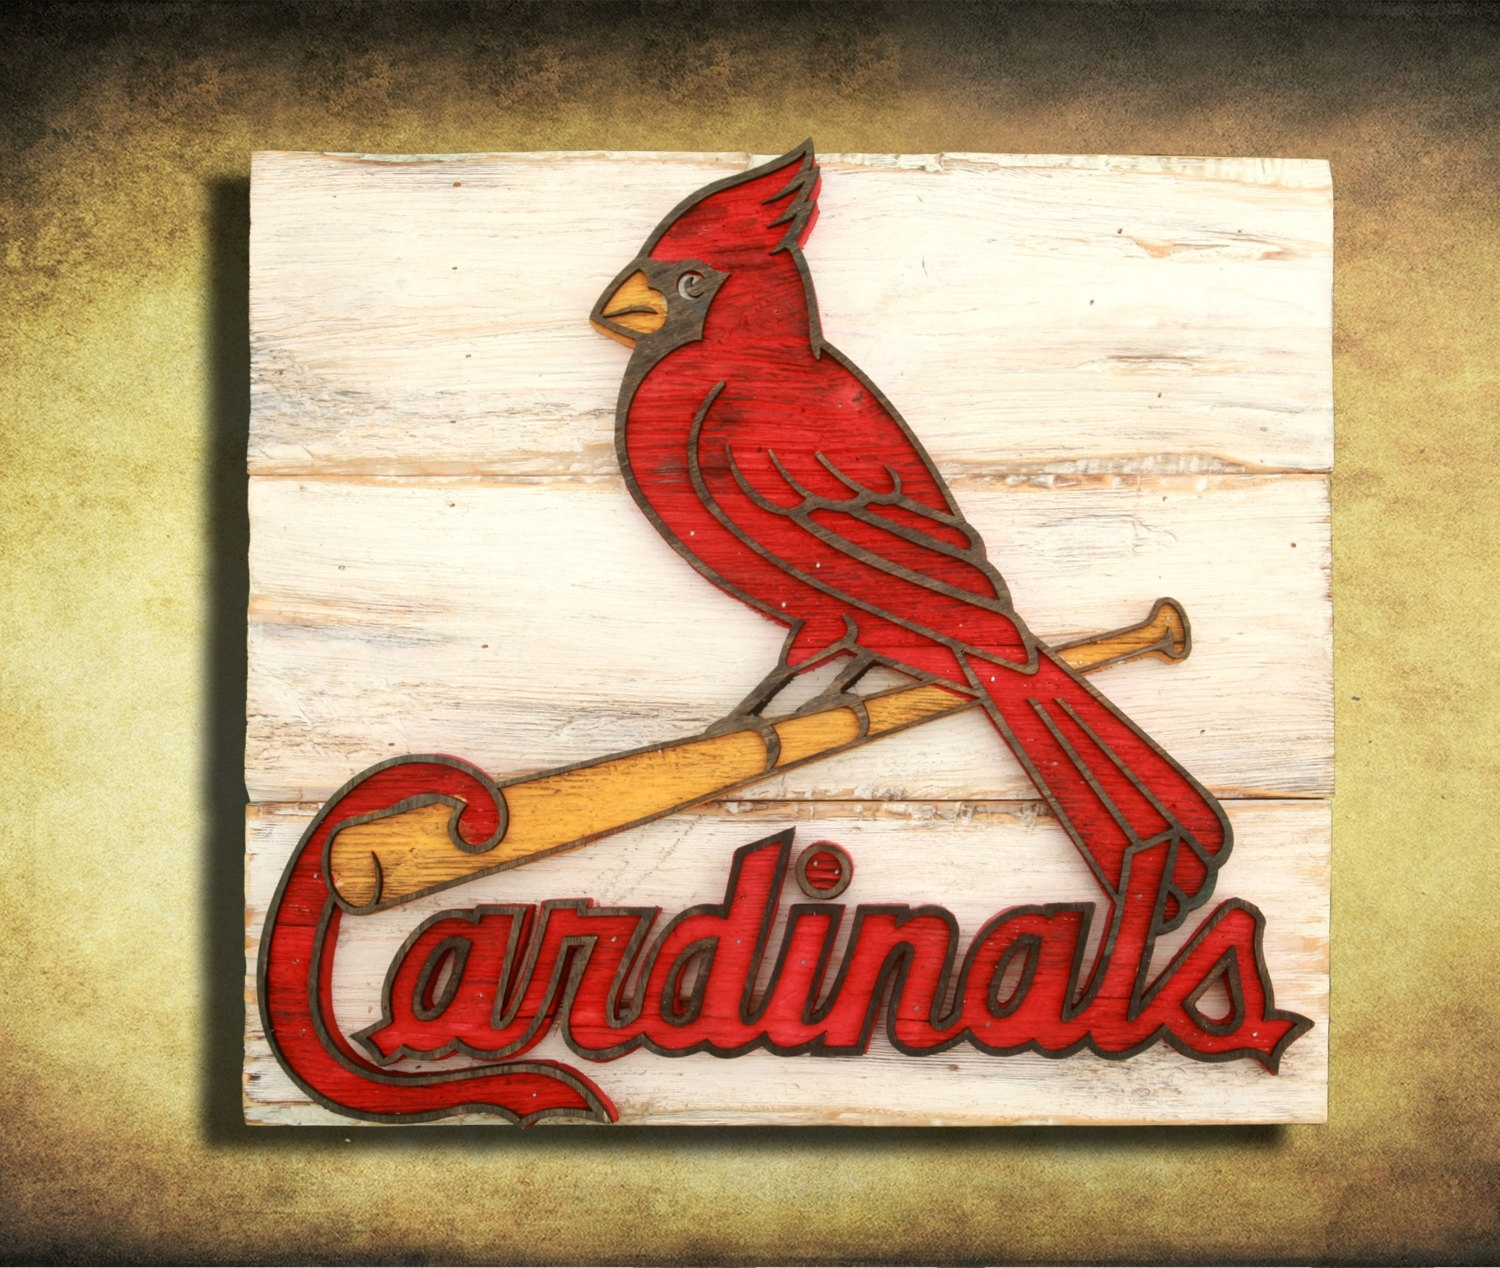 Saint Louis Cardinals Handmade Distressed Wood Sign, Vintage, Art Intended For 2017 Baseball Wall Art (View 8 of 20)